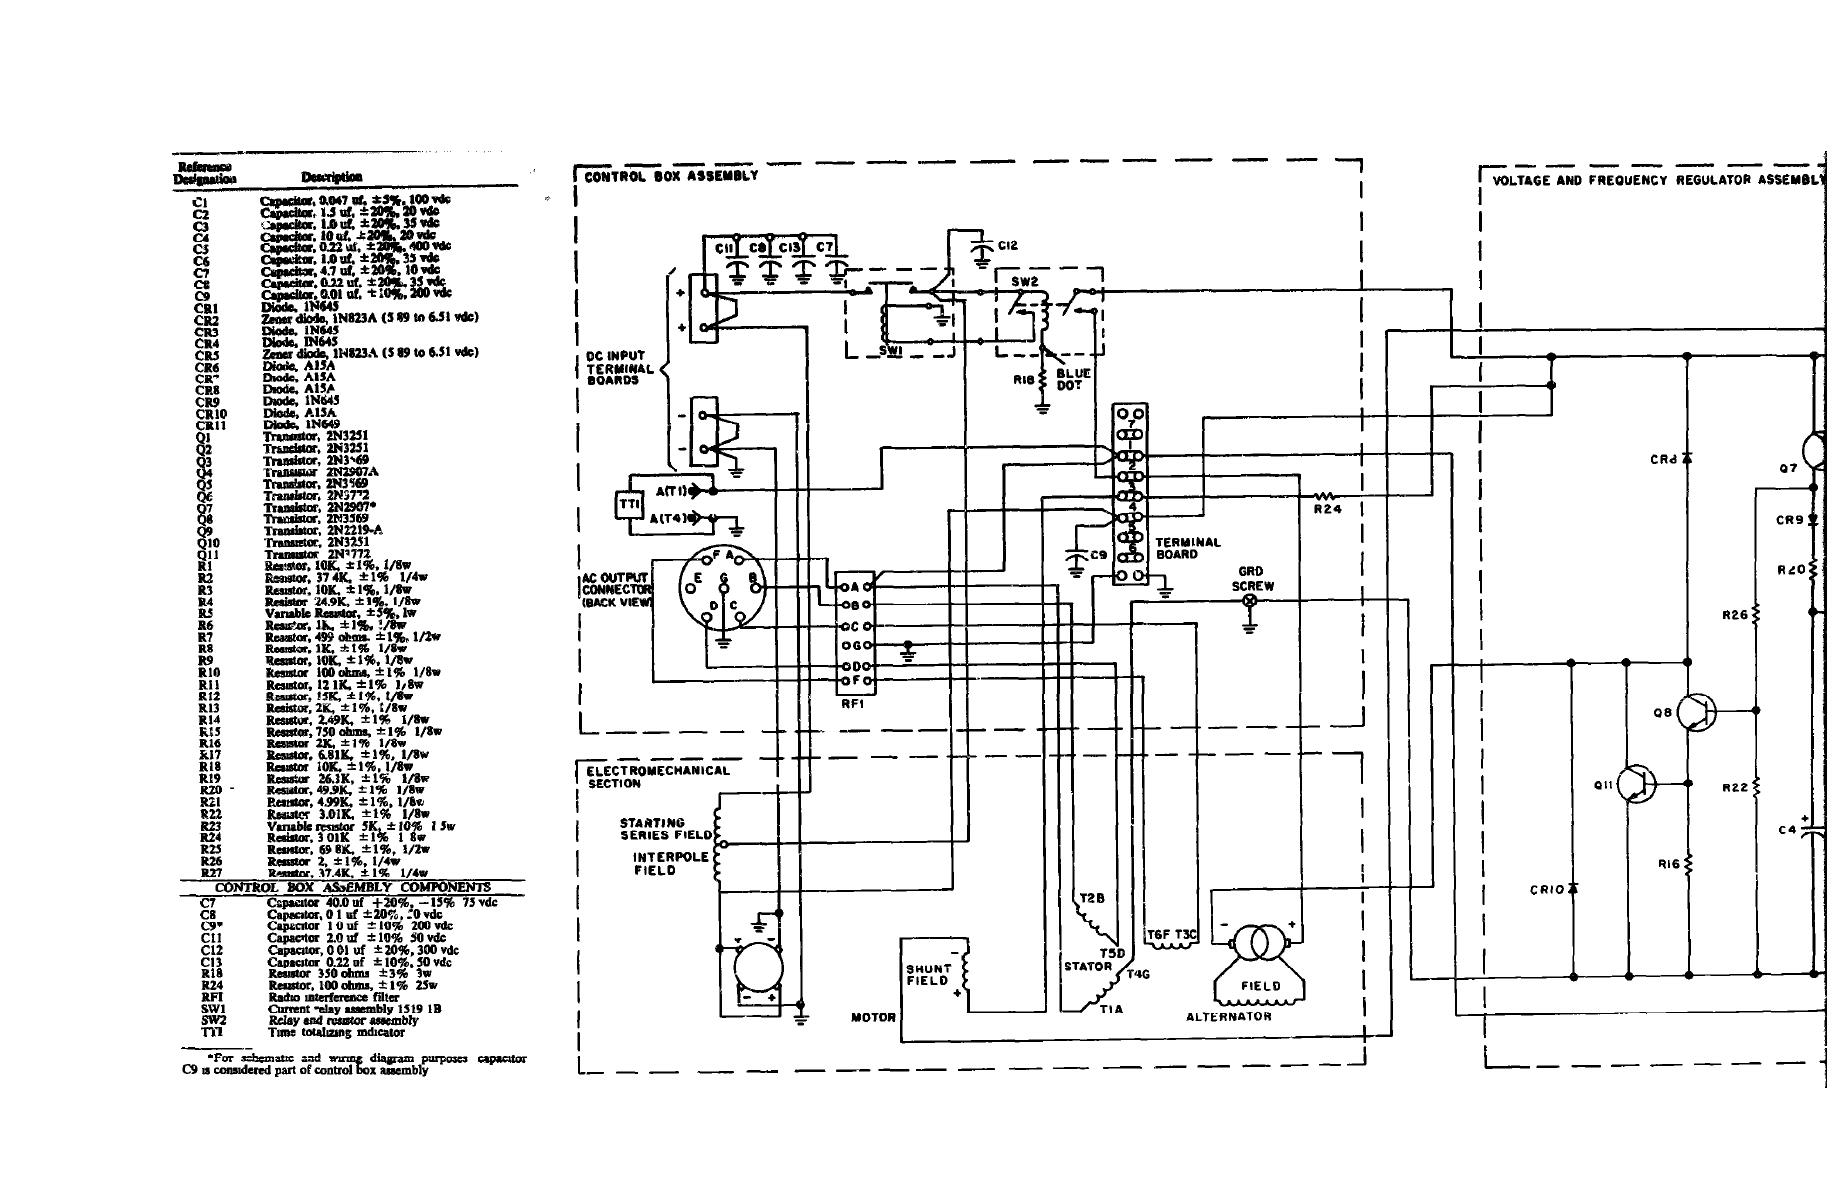 hight resolution of figure fo 2 1 schematic diagram for motor generator pu 750a a tm rh generators tpub com diesel generator schematic diagram generator circuit diagram